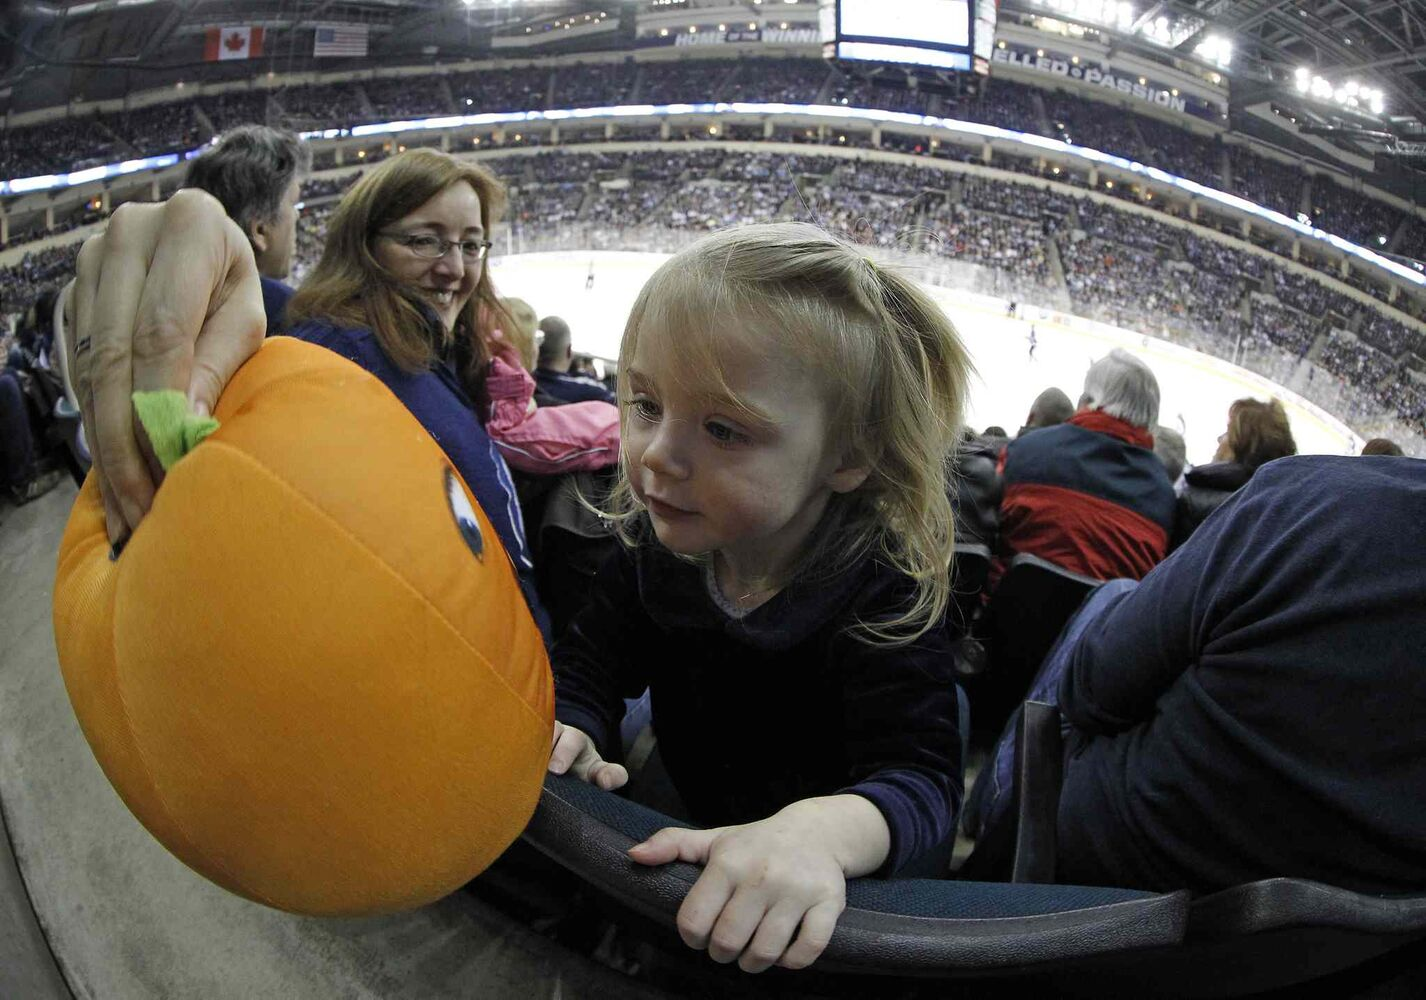 Gary and Kelly Depaulo brought their granddaughter, 21-month-old Jory Depaulo, to her first NHL hockey game. Kelly had to use other means to keep Jory entertained late in the third period as the Winnipeg Jets lost to the Columbus Blue Jackets at MTS Centre in Winnipeg Saturday. (Trevor Hagan / Winnipeg Free Press)